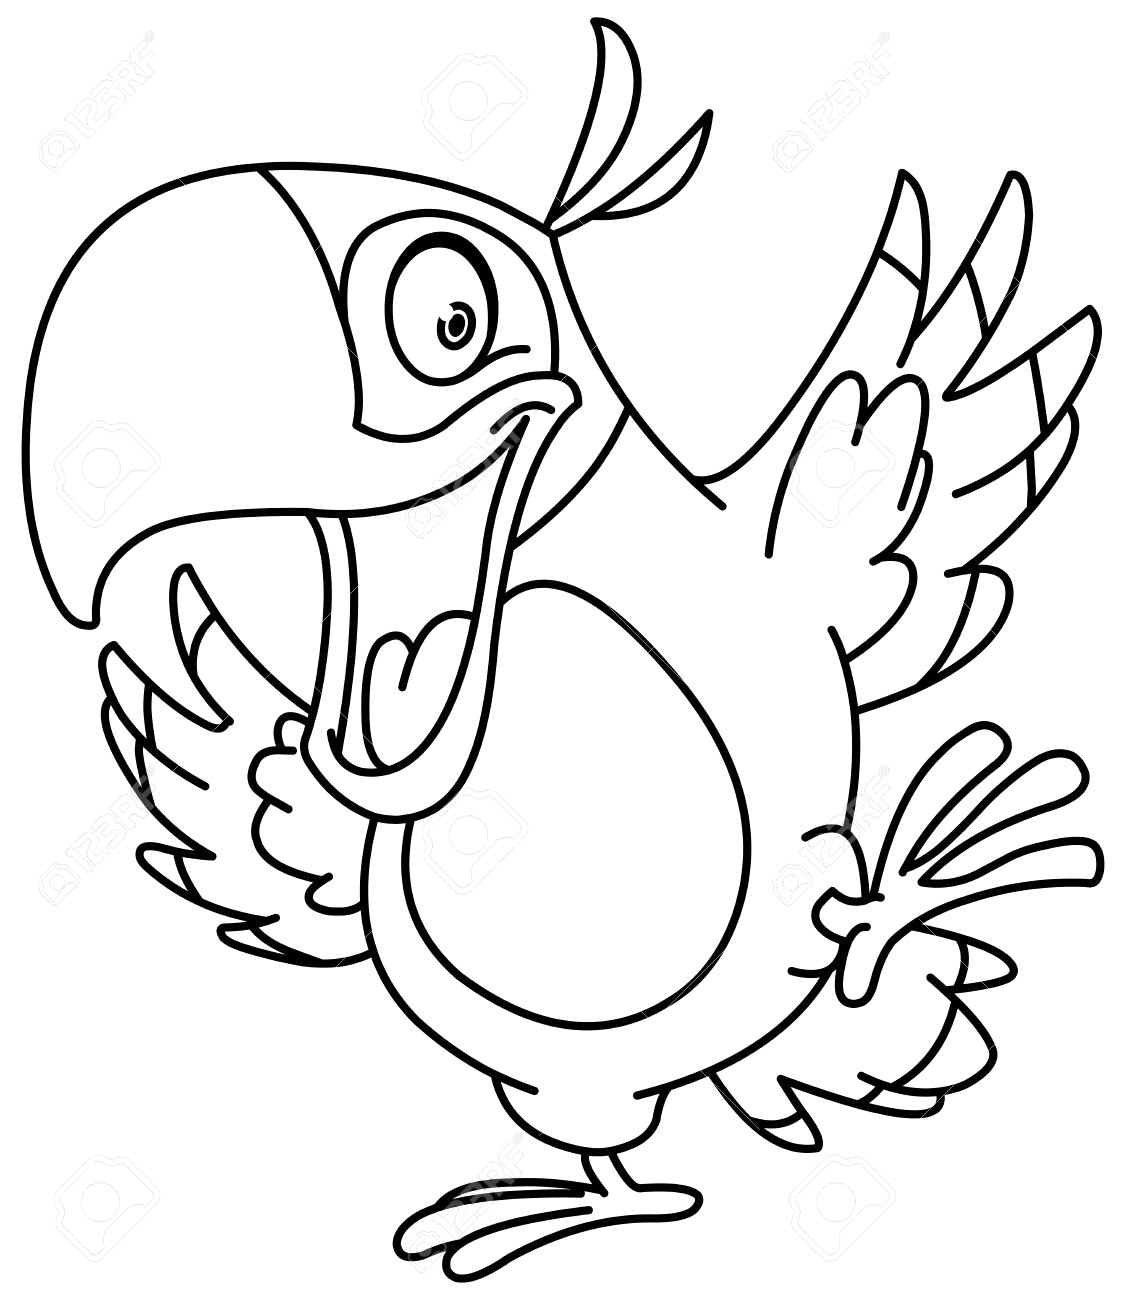 pirate parrot coloring pages pirate parrot drawing free download on clipartmag parrot pirate coloring pages